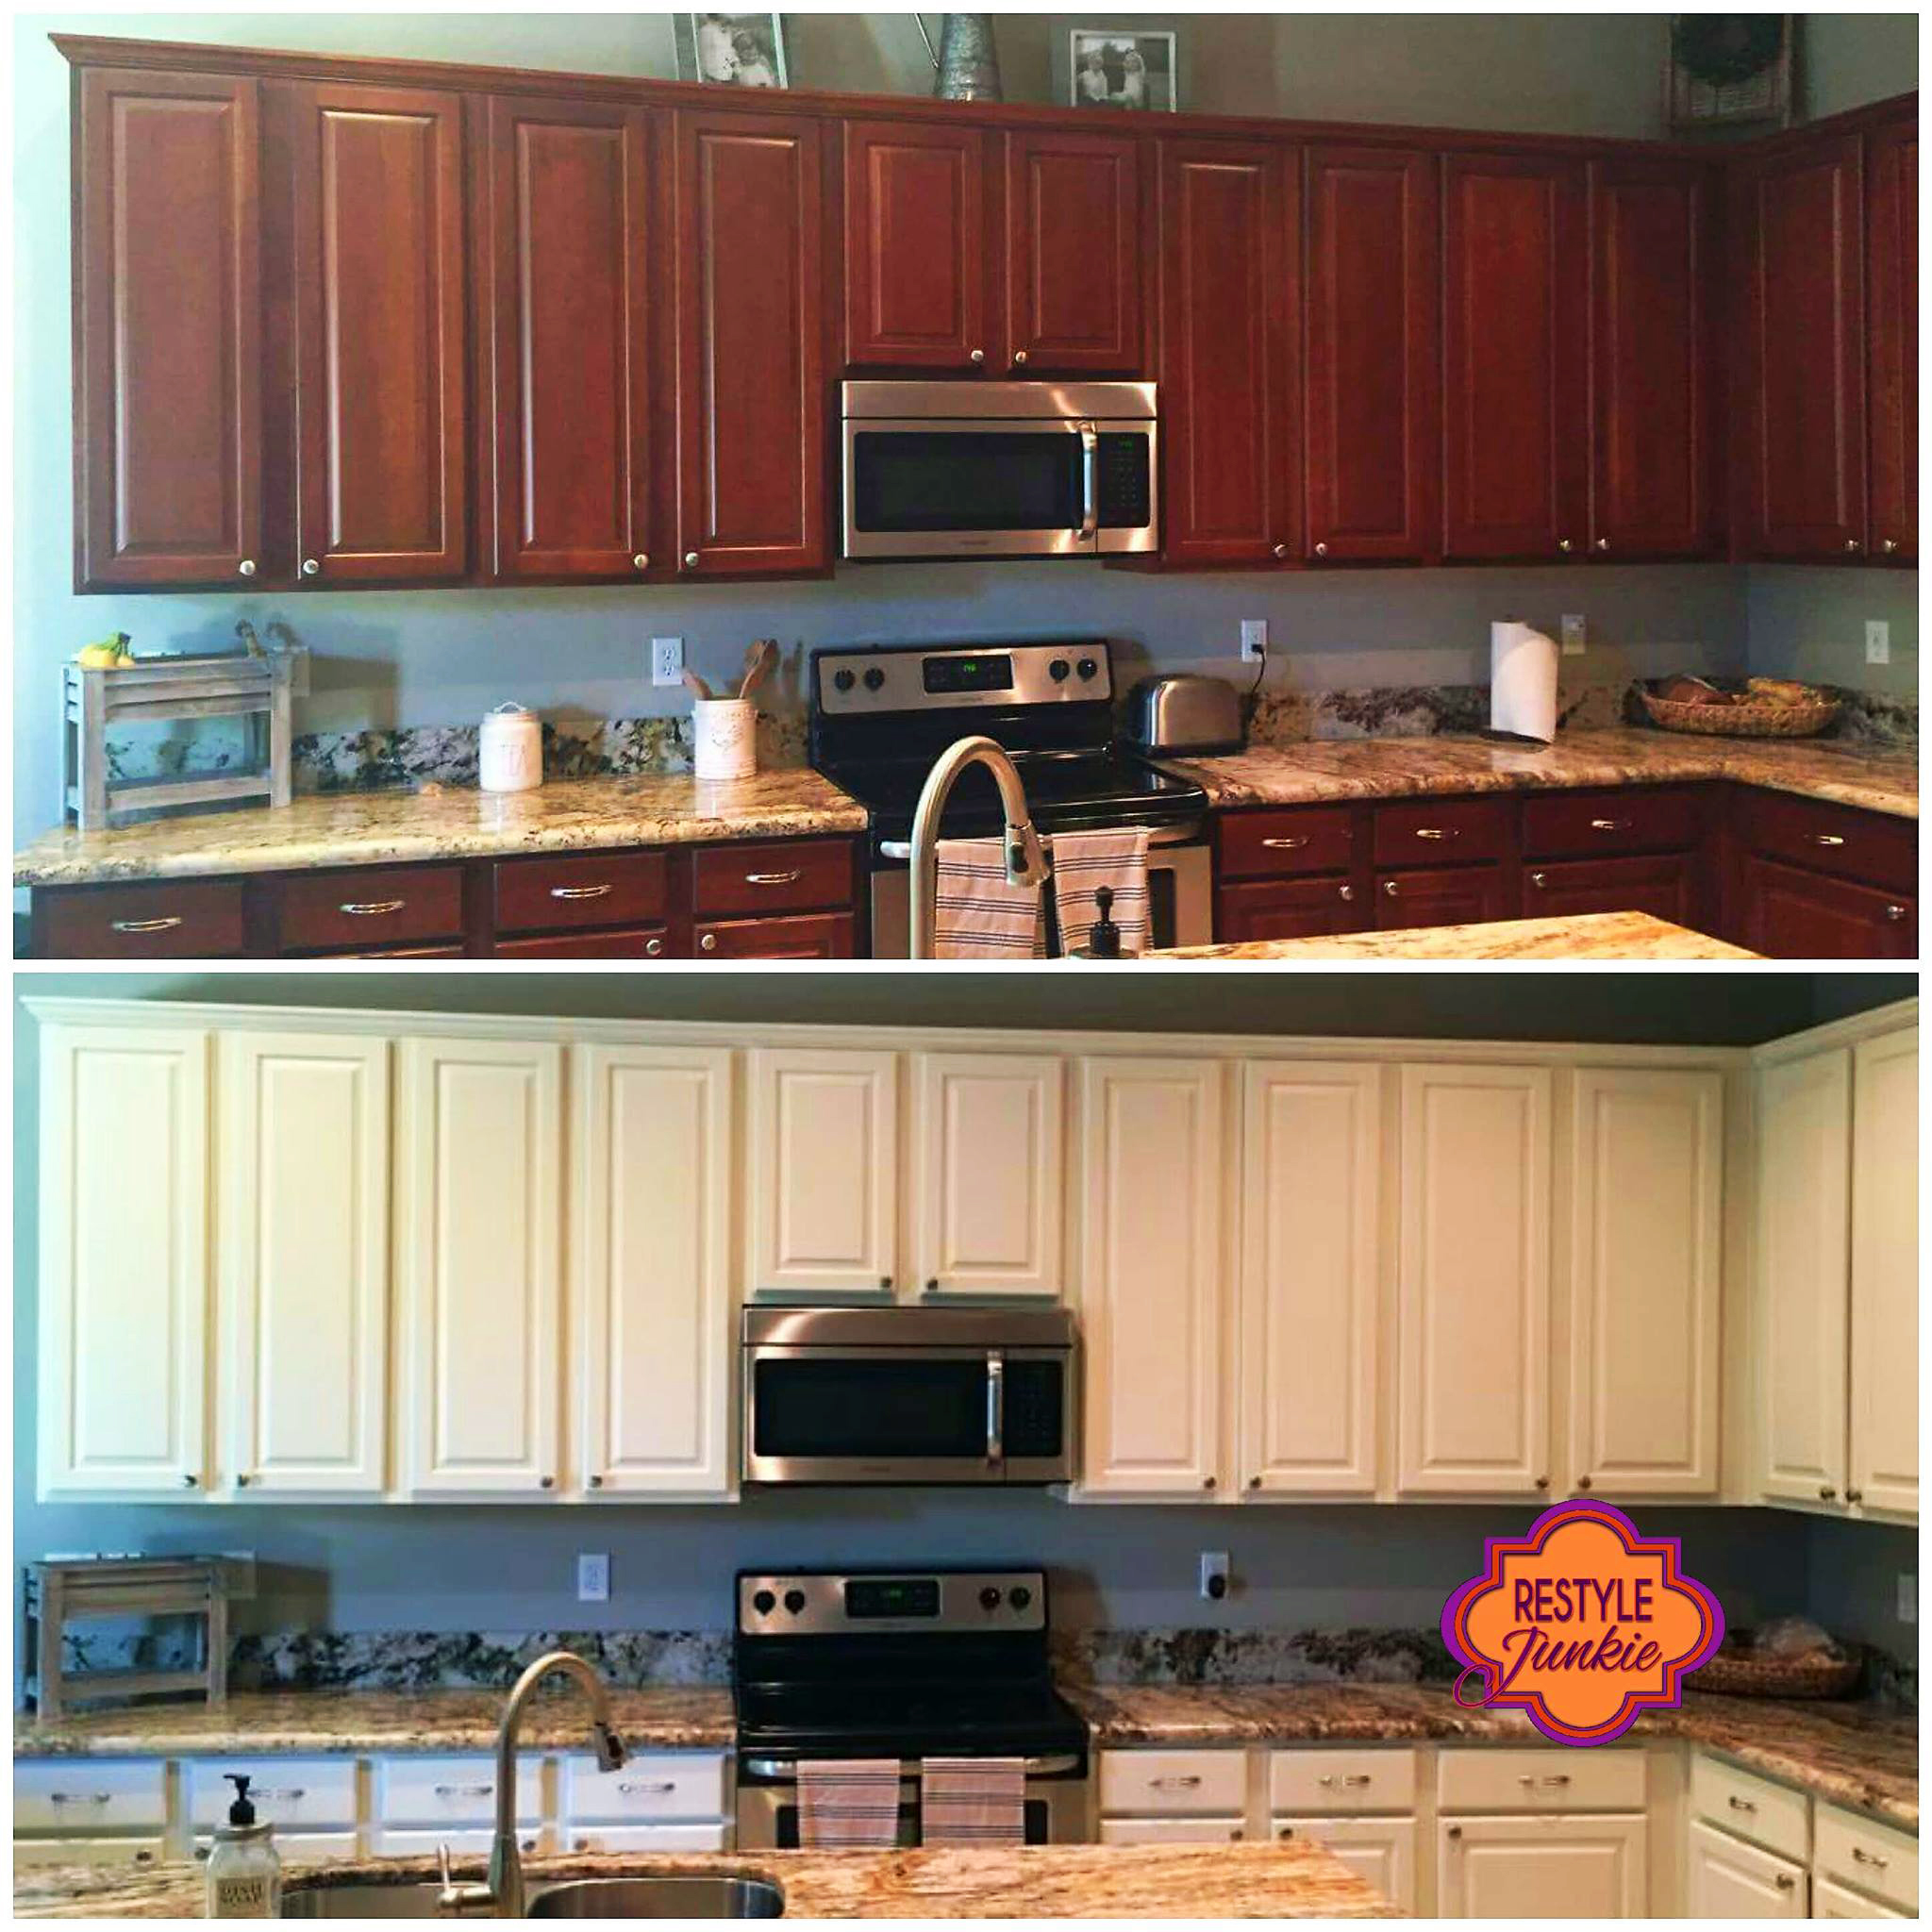 Used White Kitchen Cabinets: Antique White Kitchen Cabinet Makeover